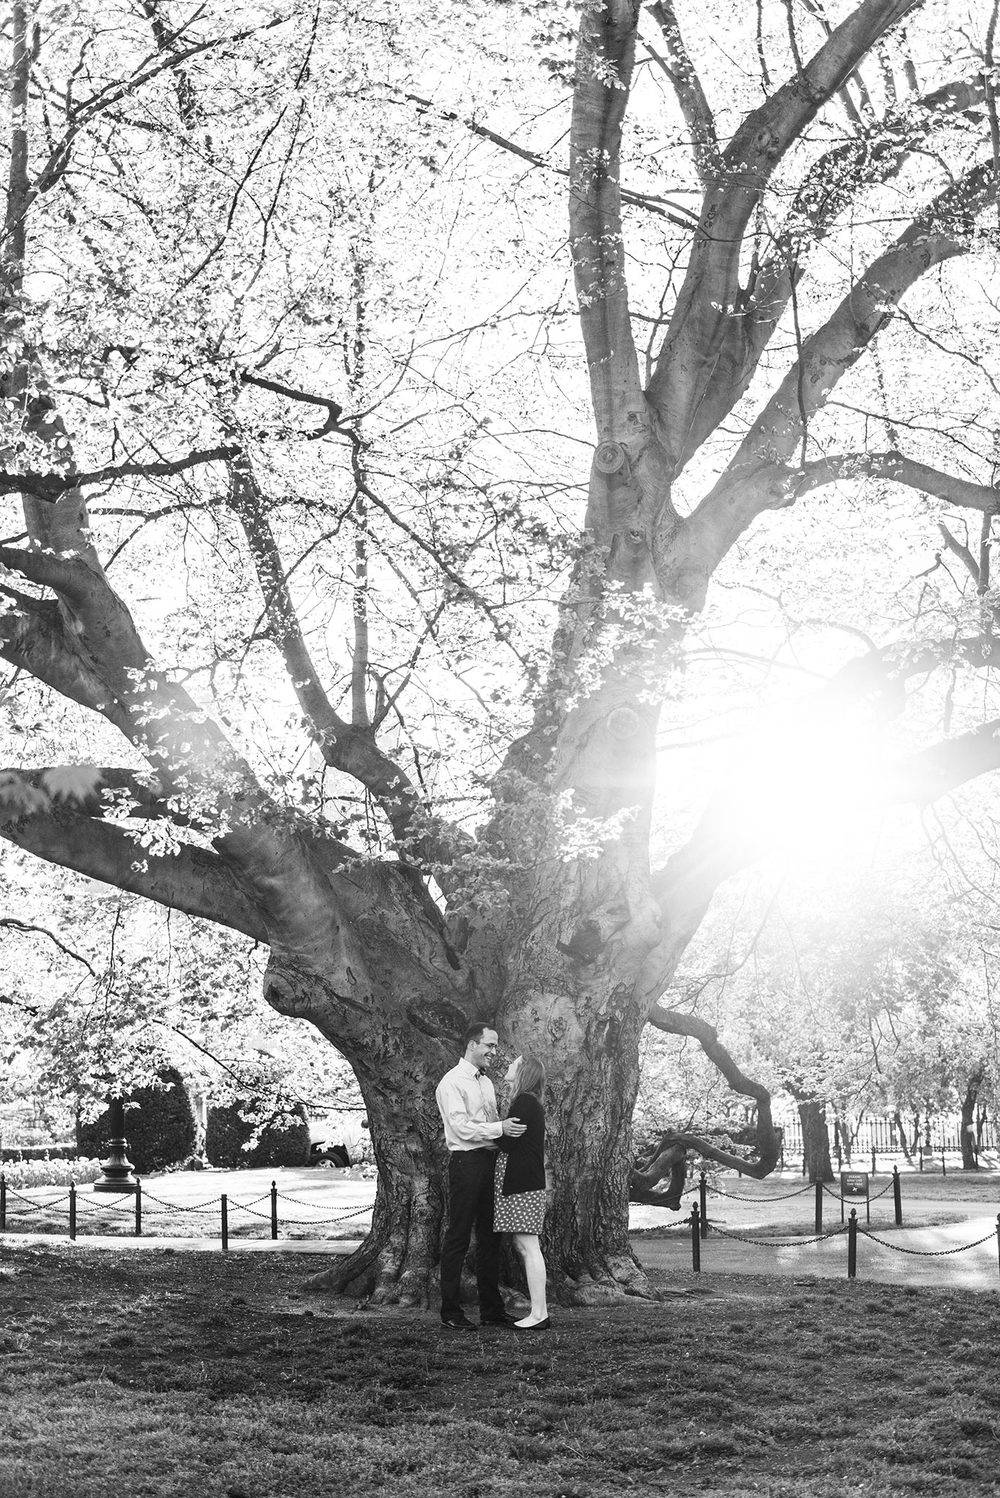 Classic + Modern Boston Public Garden, Beacon Hill, and Downtown Coffee Shop Sunrise Engagement Session | Jessica and Thomas | Lorna Stell | Photographer | Boston MA